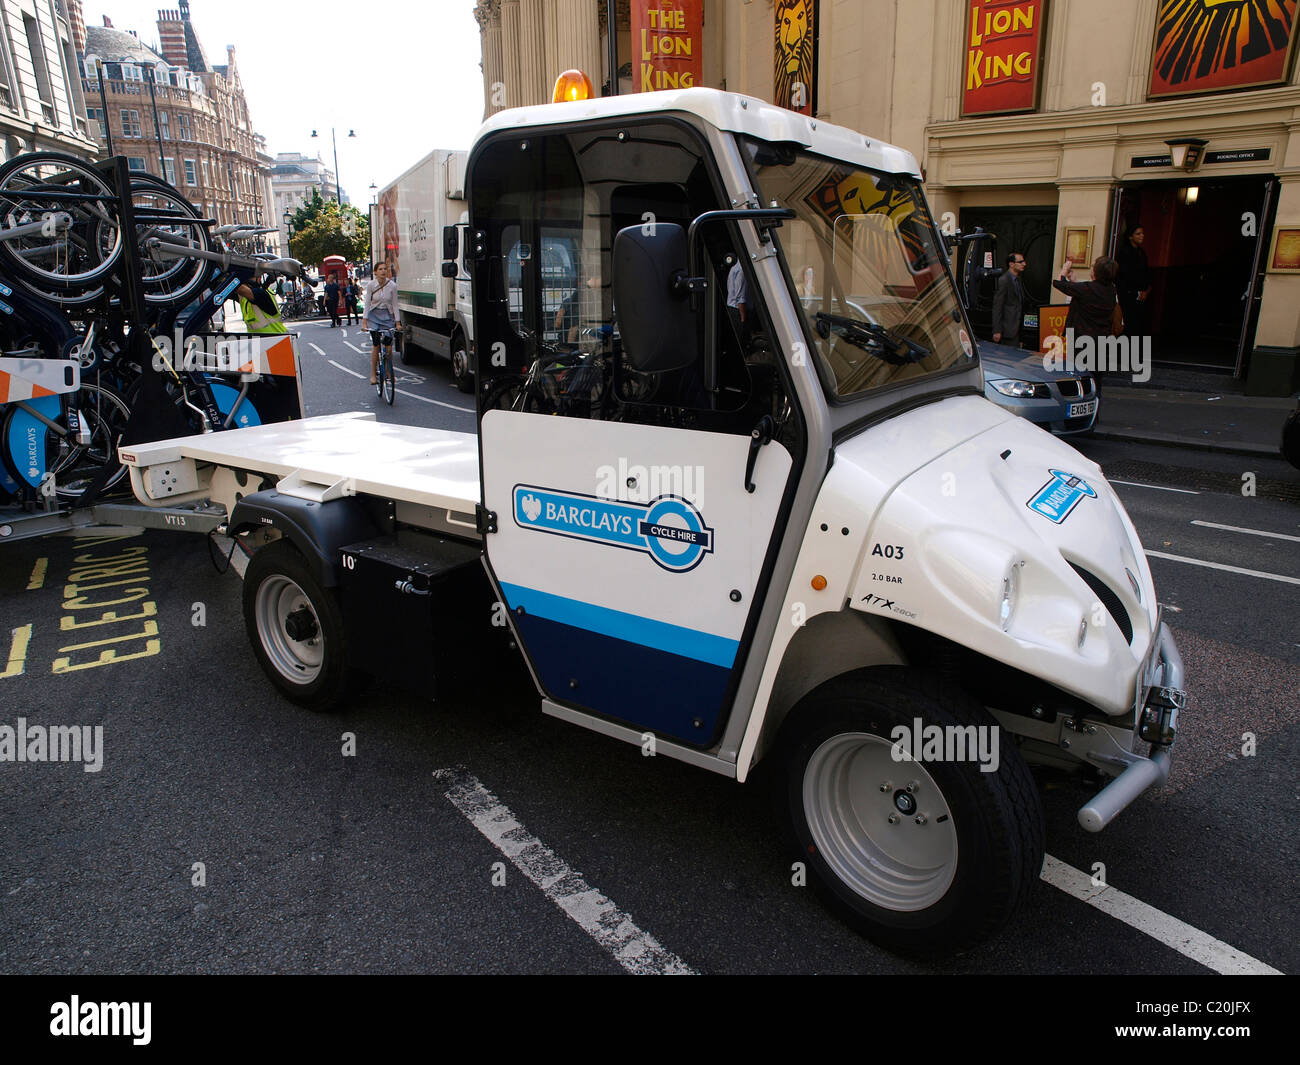 Electric maintenance vehicle to transport bicycles for the Barclays TFL bicycle scheme - Stock Image